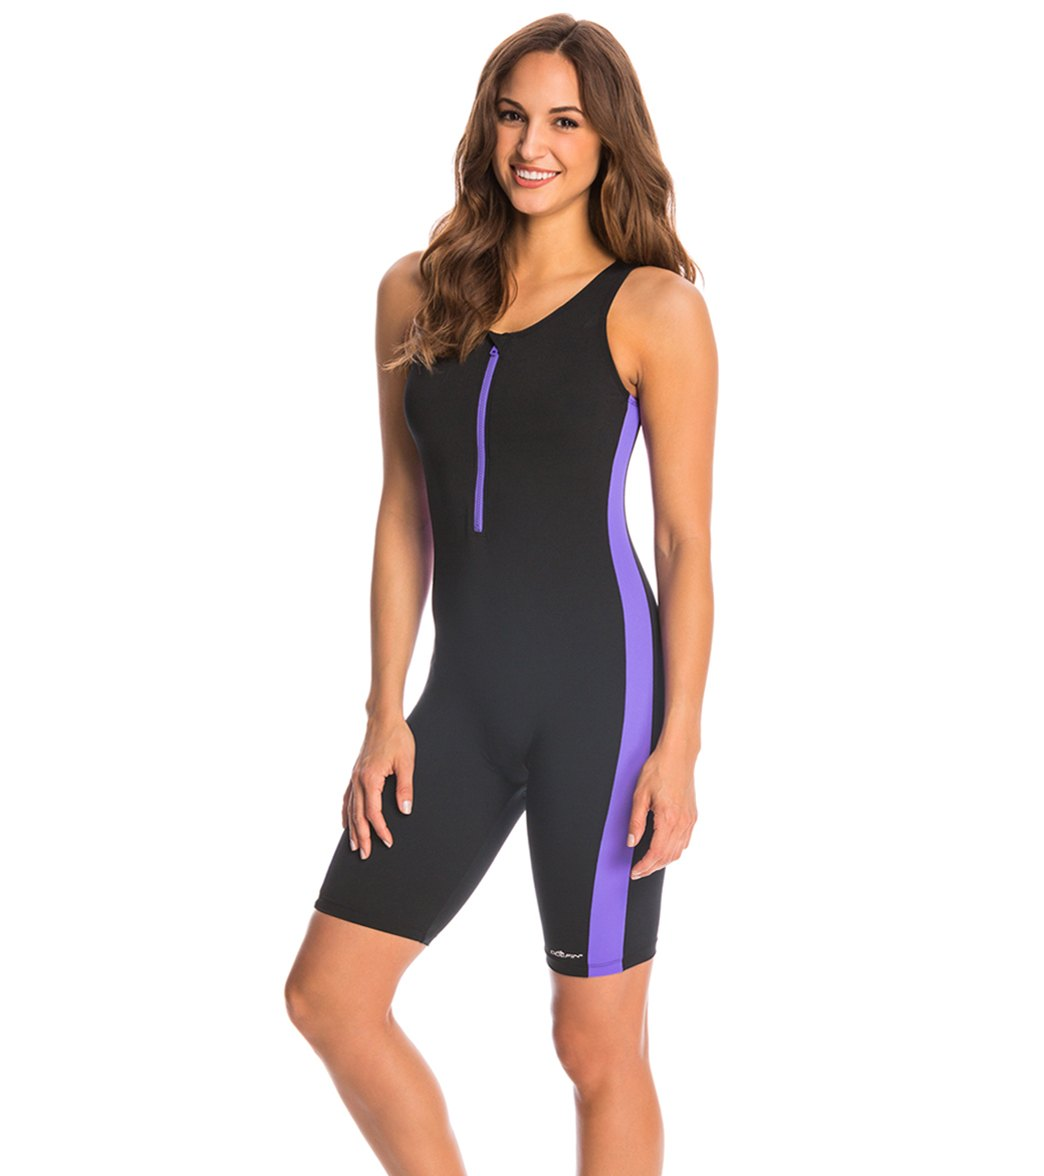 e67cdd73d945e Dolfin Aquashape Zip-Front One Piece Aquatard Swimsuit at SwimOutlet.com -  Free Shipping